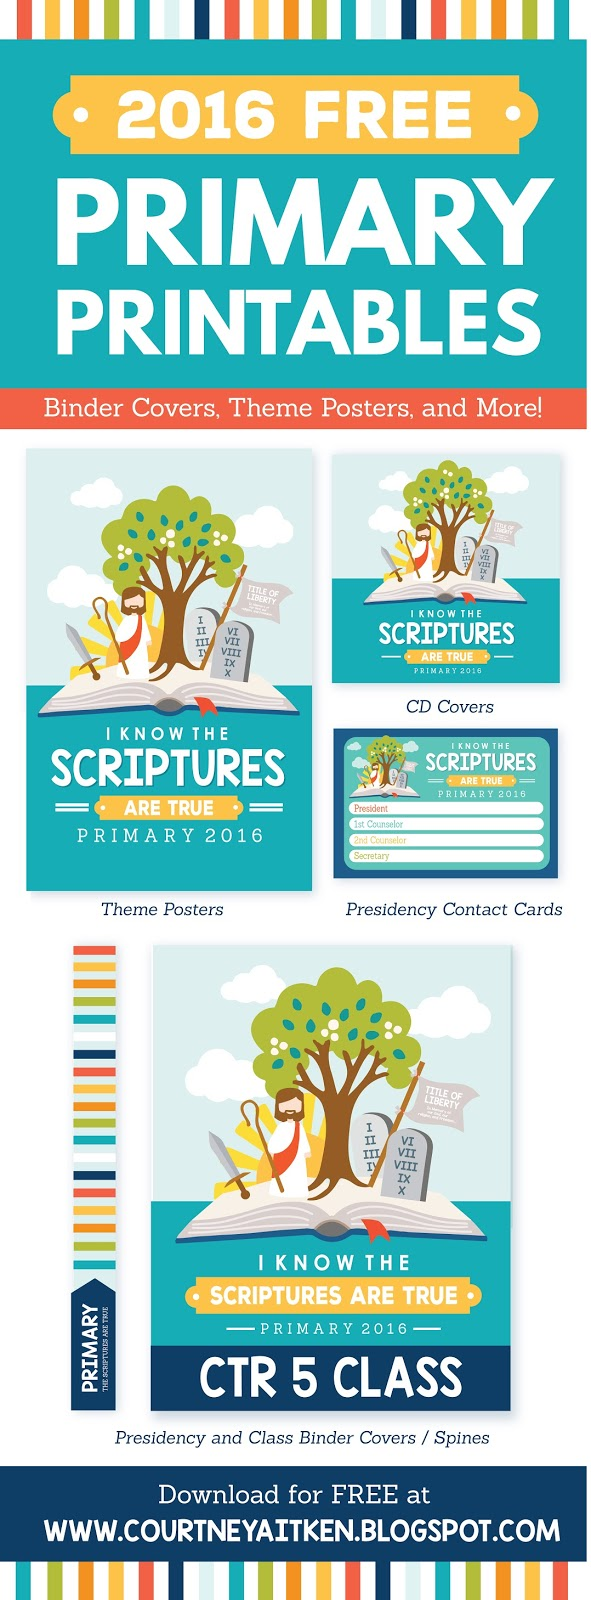 Mormon Share } 2016 General Conference FREE Printables